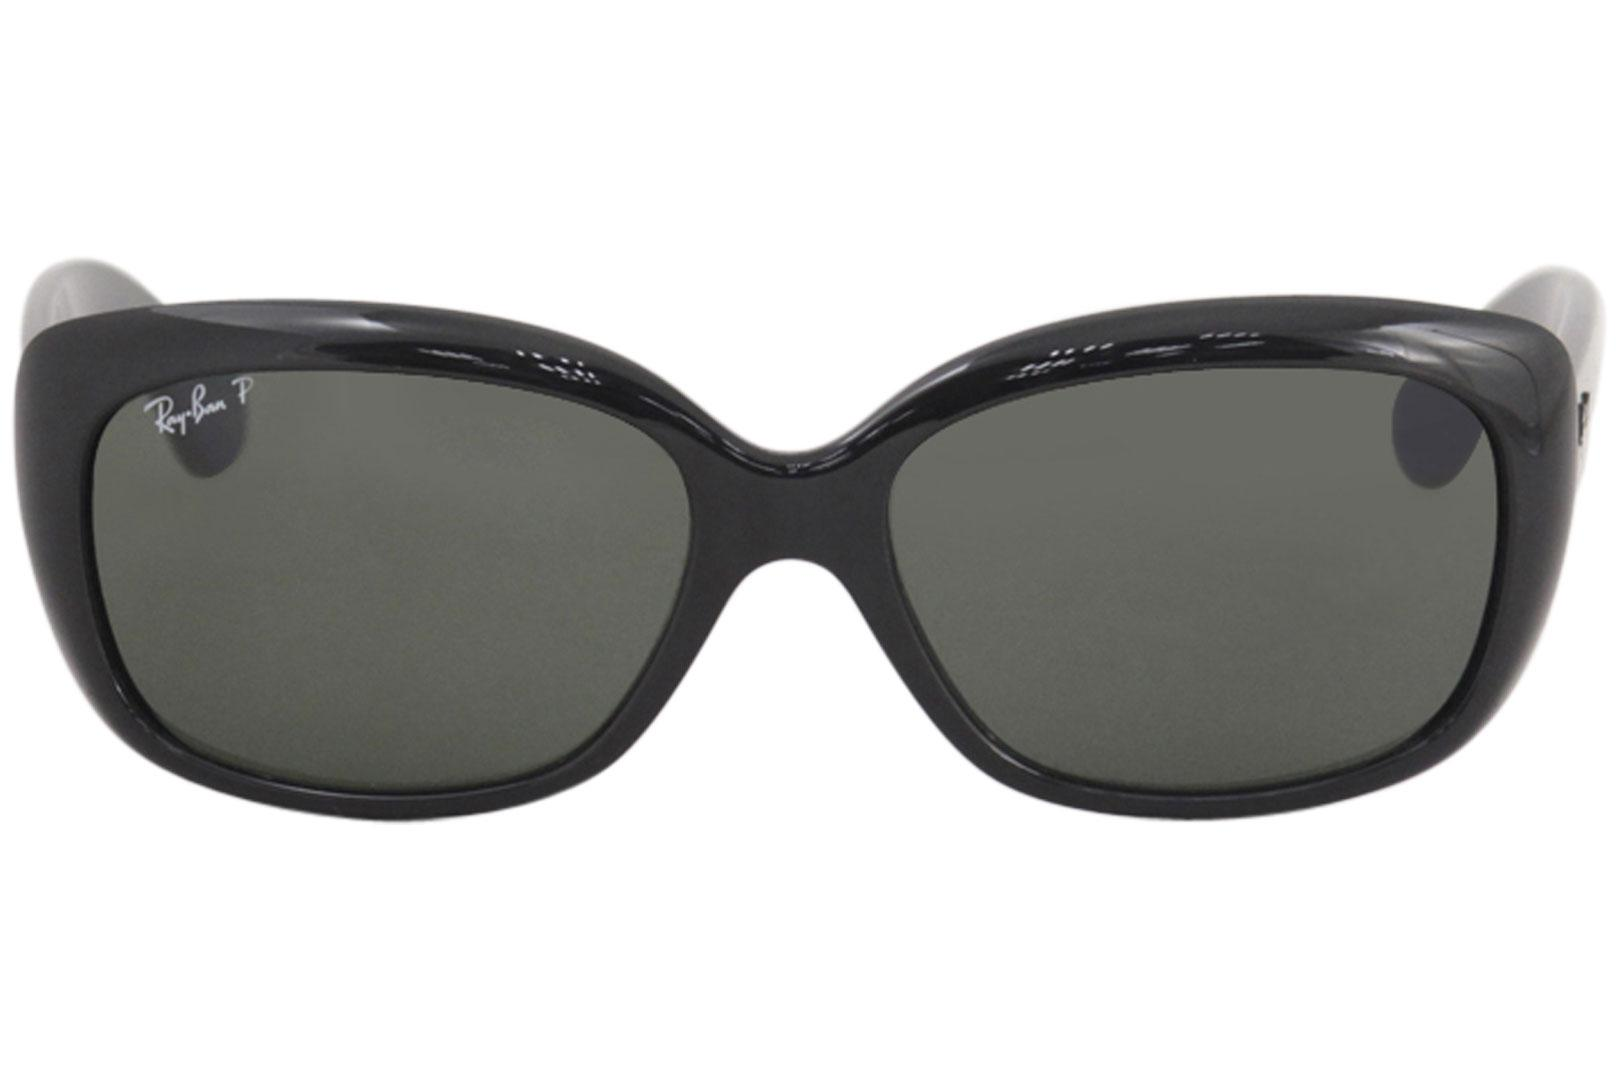 7eb154e4f9d Ray Ban Women s Jackie-Ohh RB4101 RB 4101 Fashion Rectangle RayBan  Sunglasses by Ray Ban